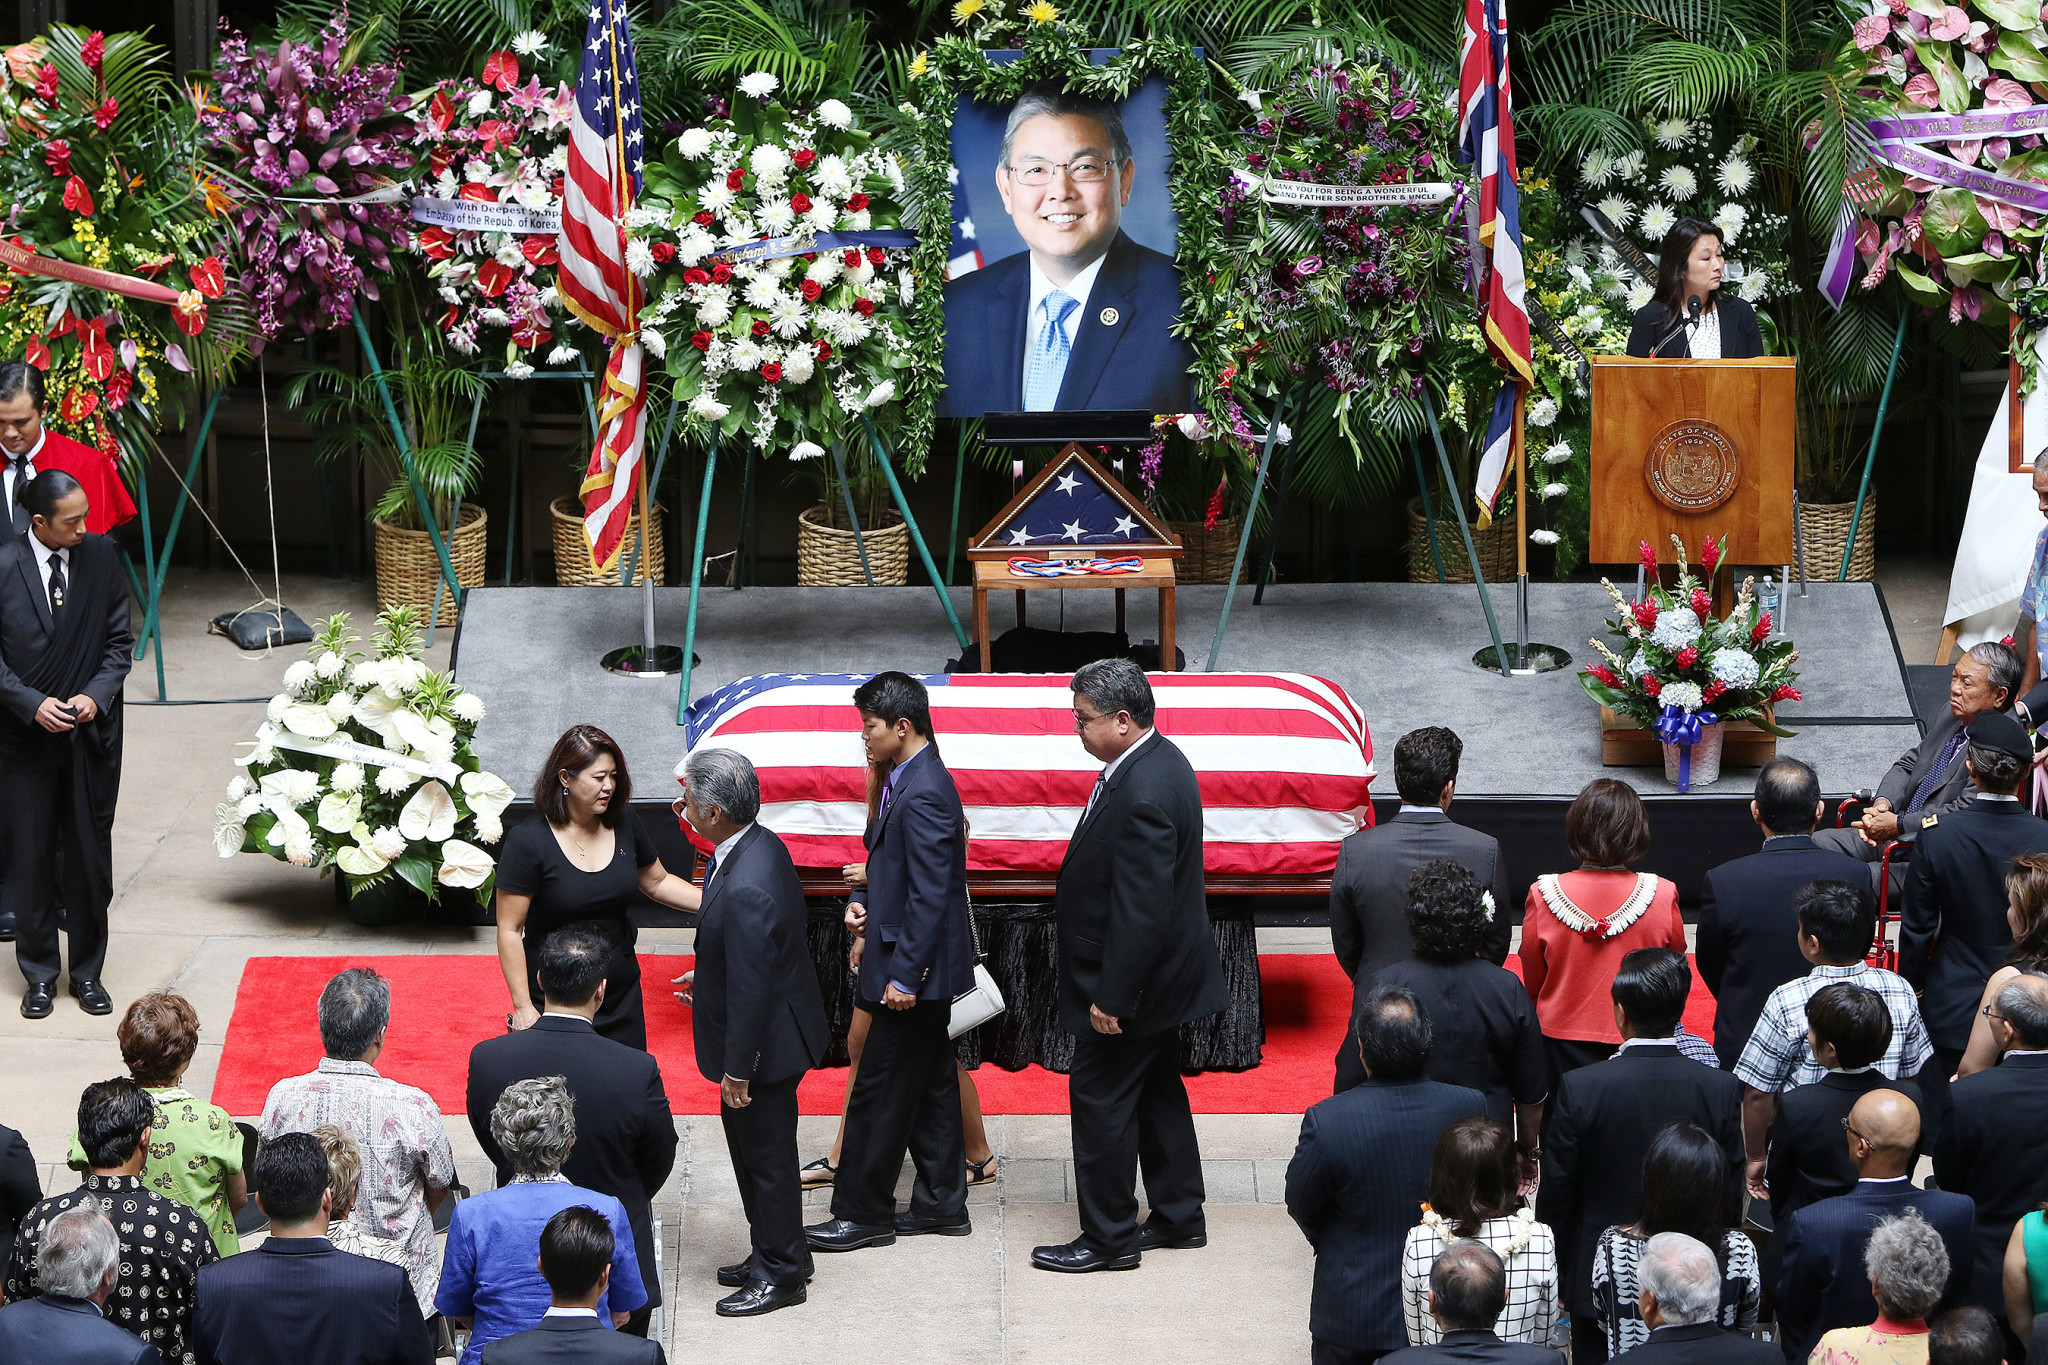 <p>Aug. 18: The late U.S. Rep. Mark Takai's casket rests in the Capitol Rotunda as his wife, Sami, greets Gov. David Ige during a memorial service. After serving 20 years in the state House of Representatives, Takai, 49, was unable to complete his first full term in Congress. <em>Cory Lum/Civil Beat</em></p>